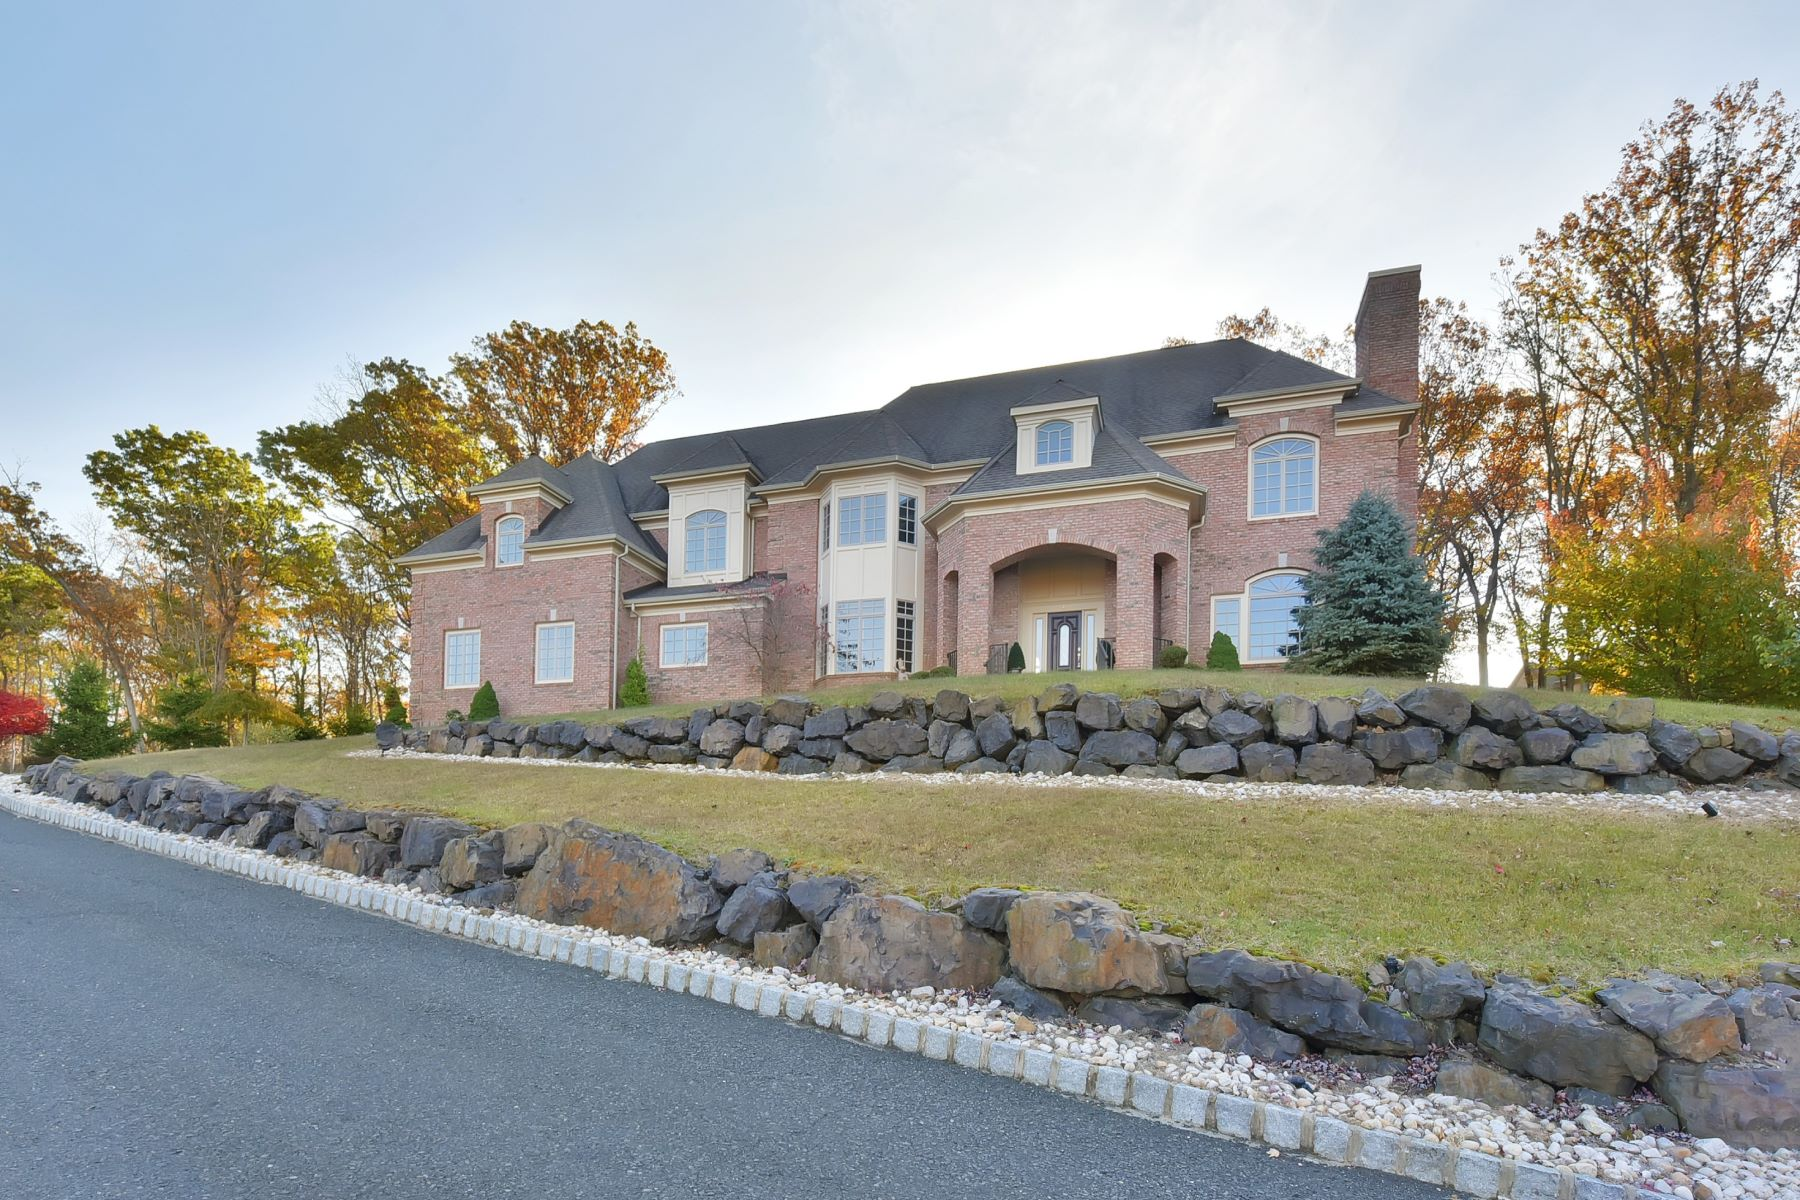 Single Family Homes for Sale at Pristine Estate 10 Kappelmann Drive Green Brook Township, New Jersey 08812 United States